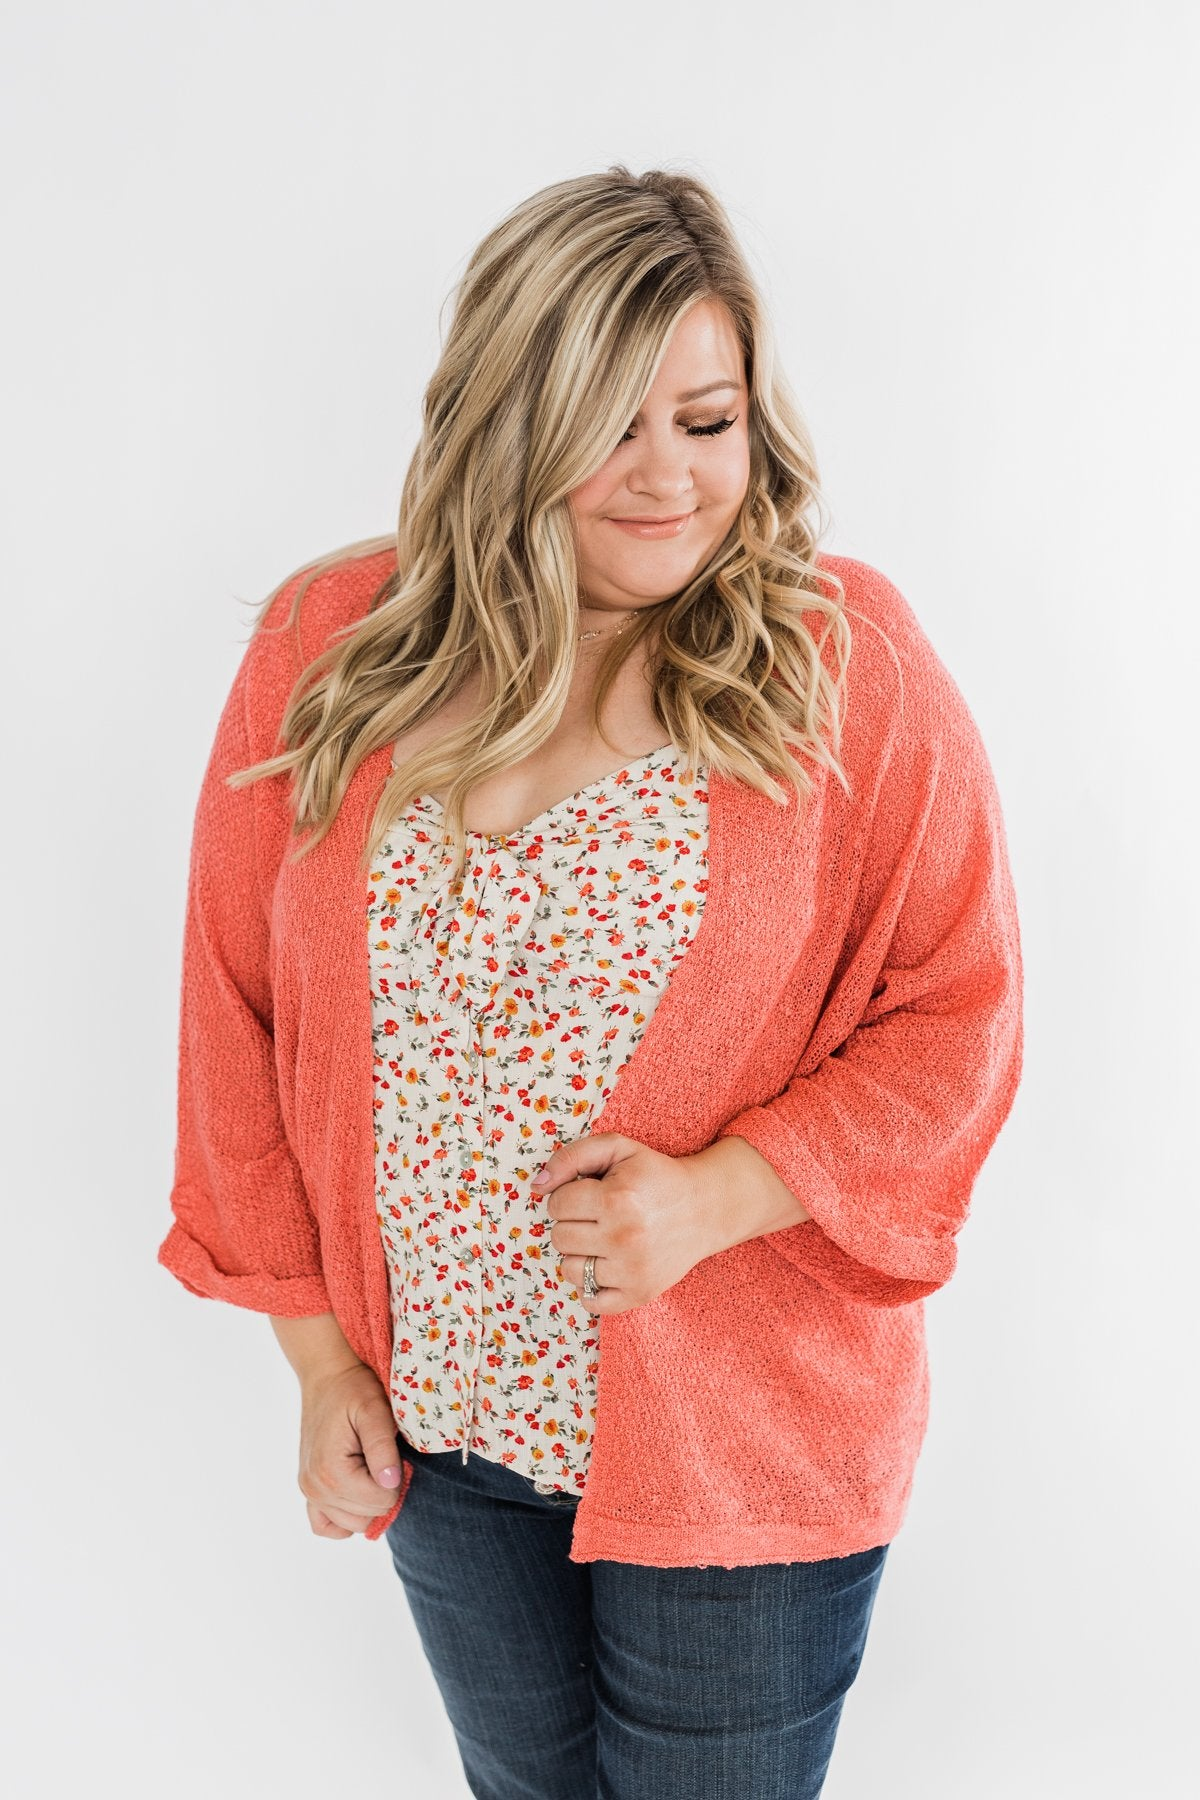 Waiting On A Miracle Knitted Cardigan- Dark Coral